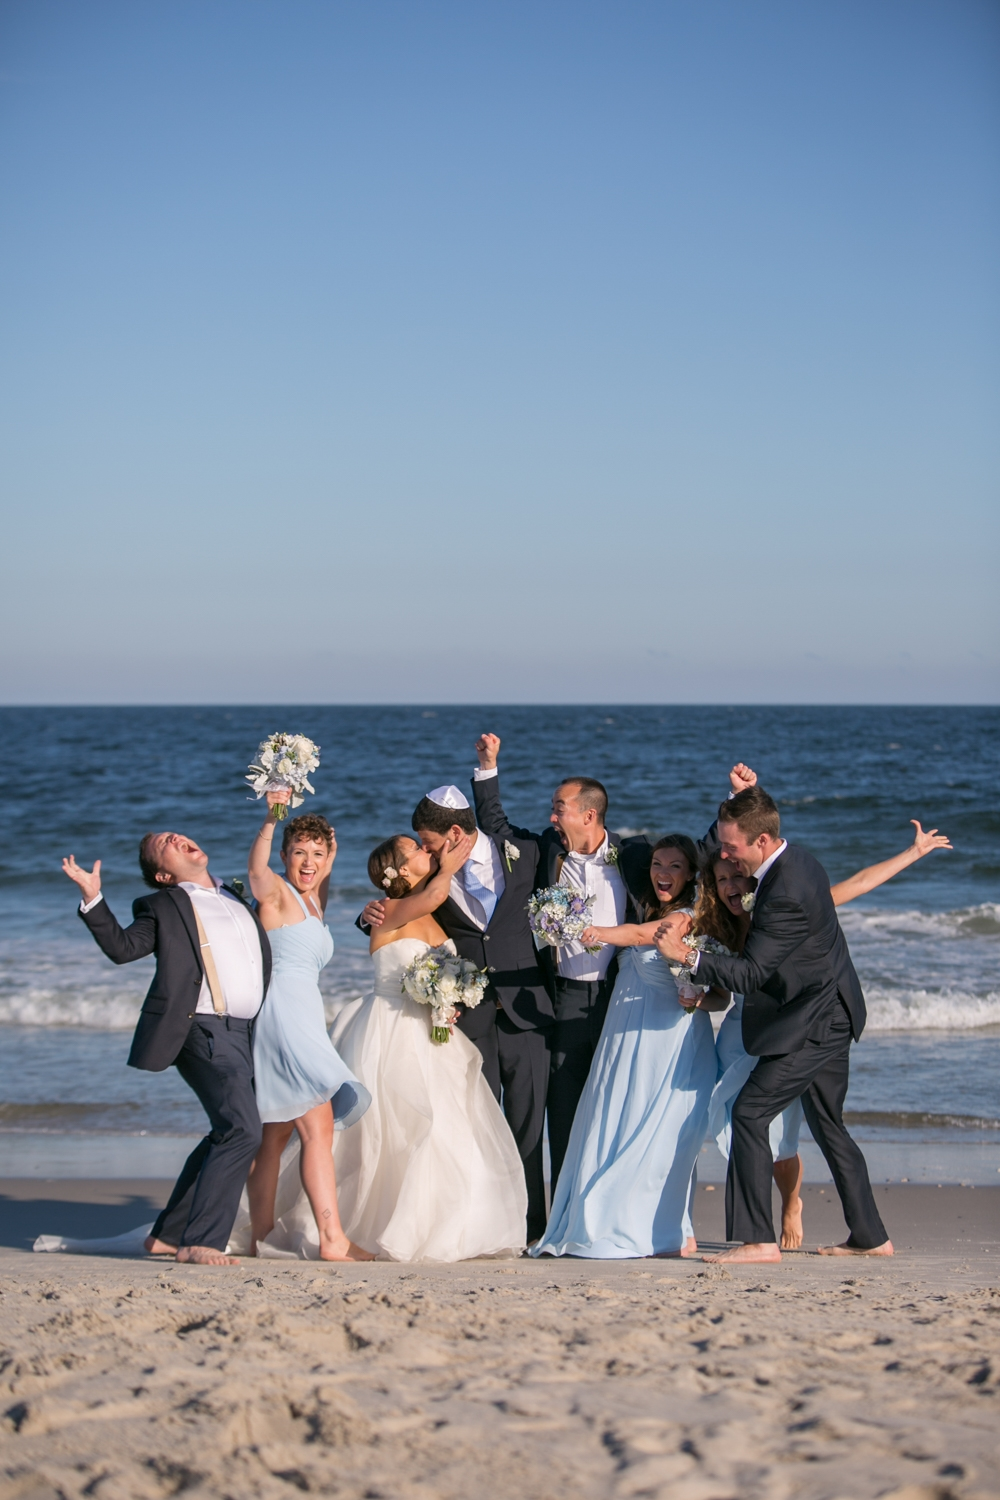 Molly and Jon married on the beach in LBI under a simple chuppah with 200 of their close family, friends. and fun loving bridal party!